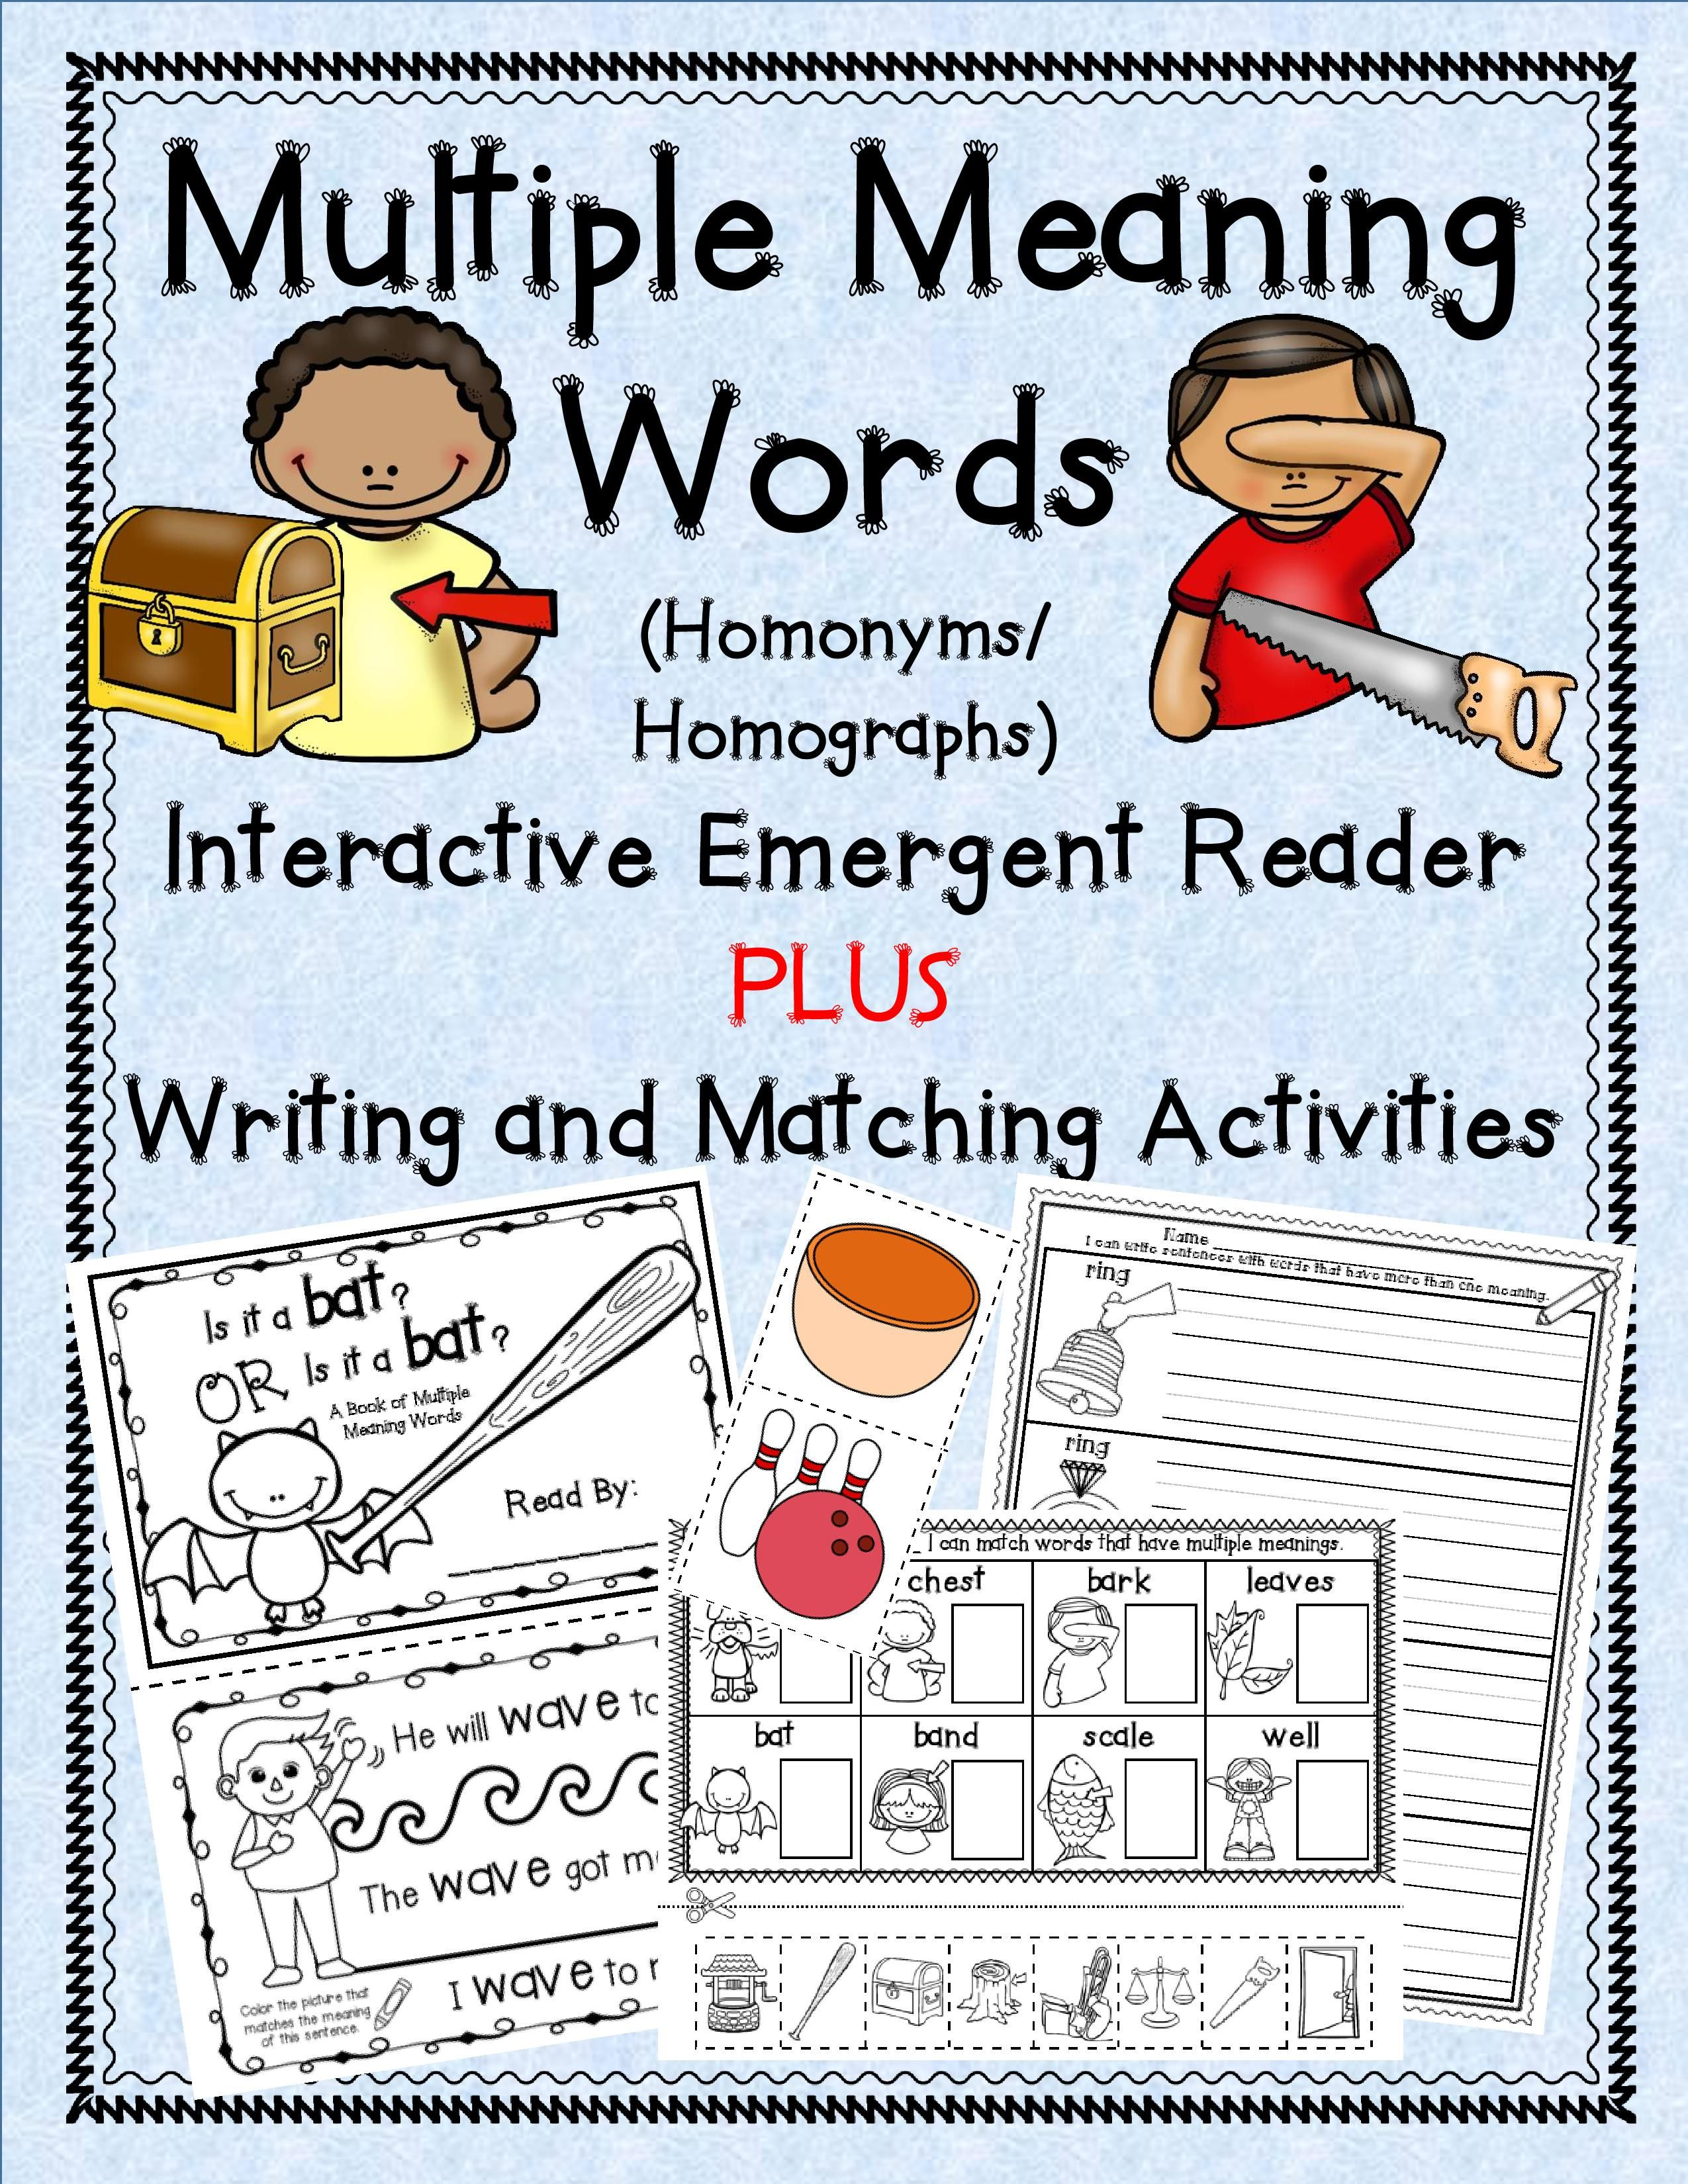 Interactive emergent reader presents multiple meaning words with